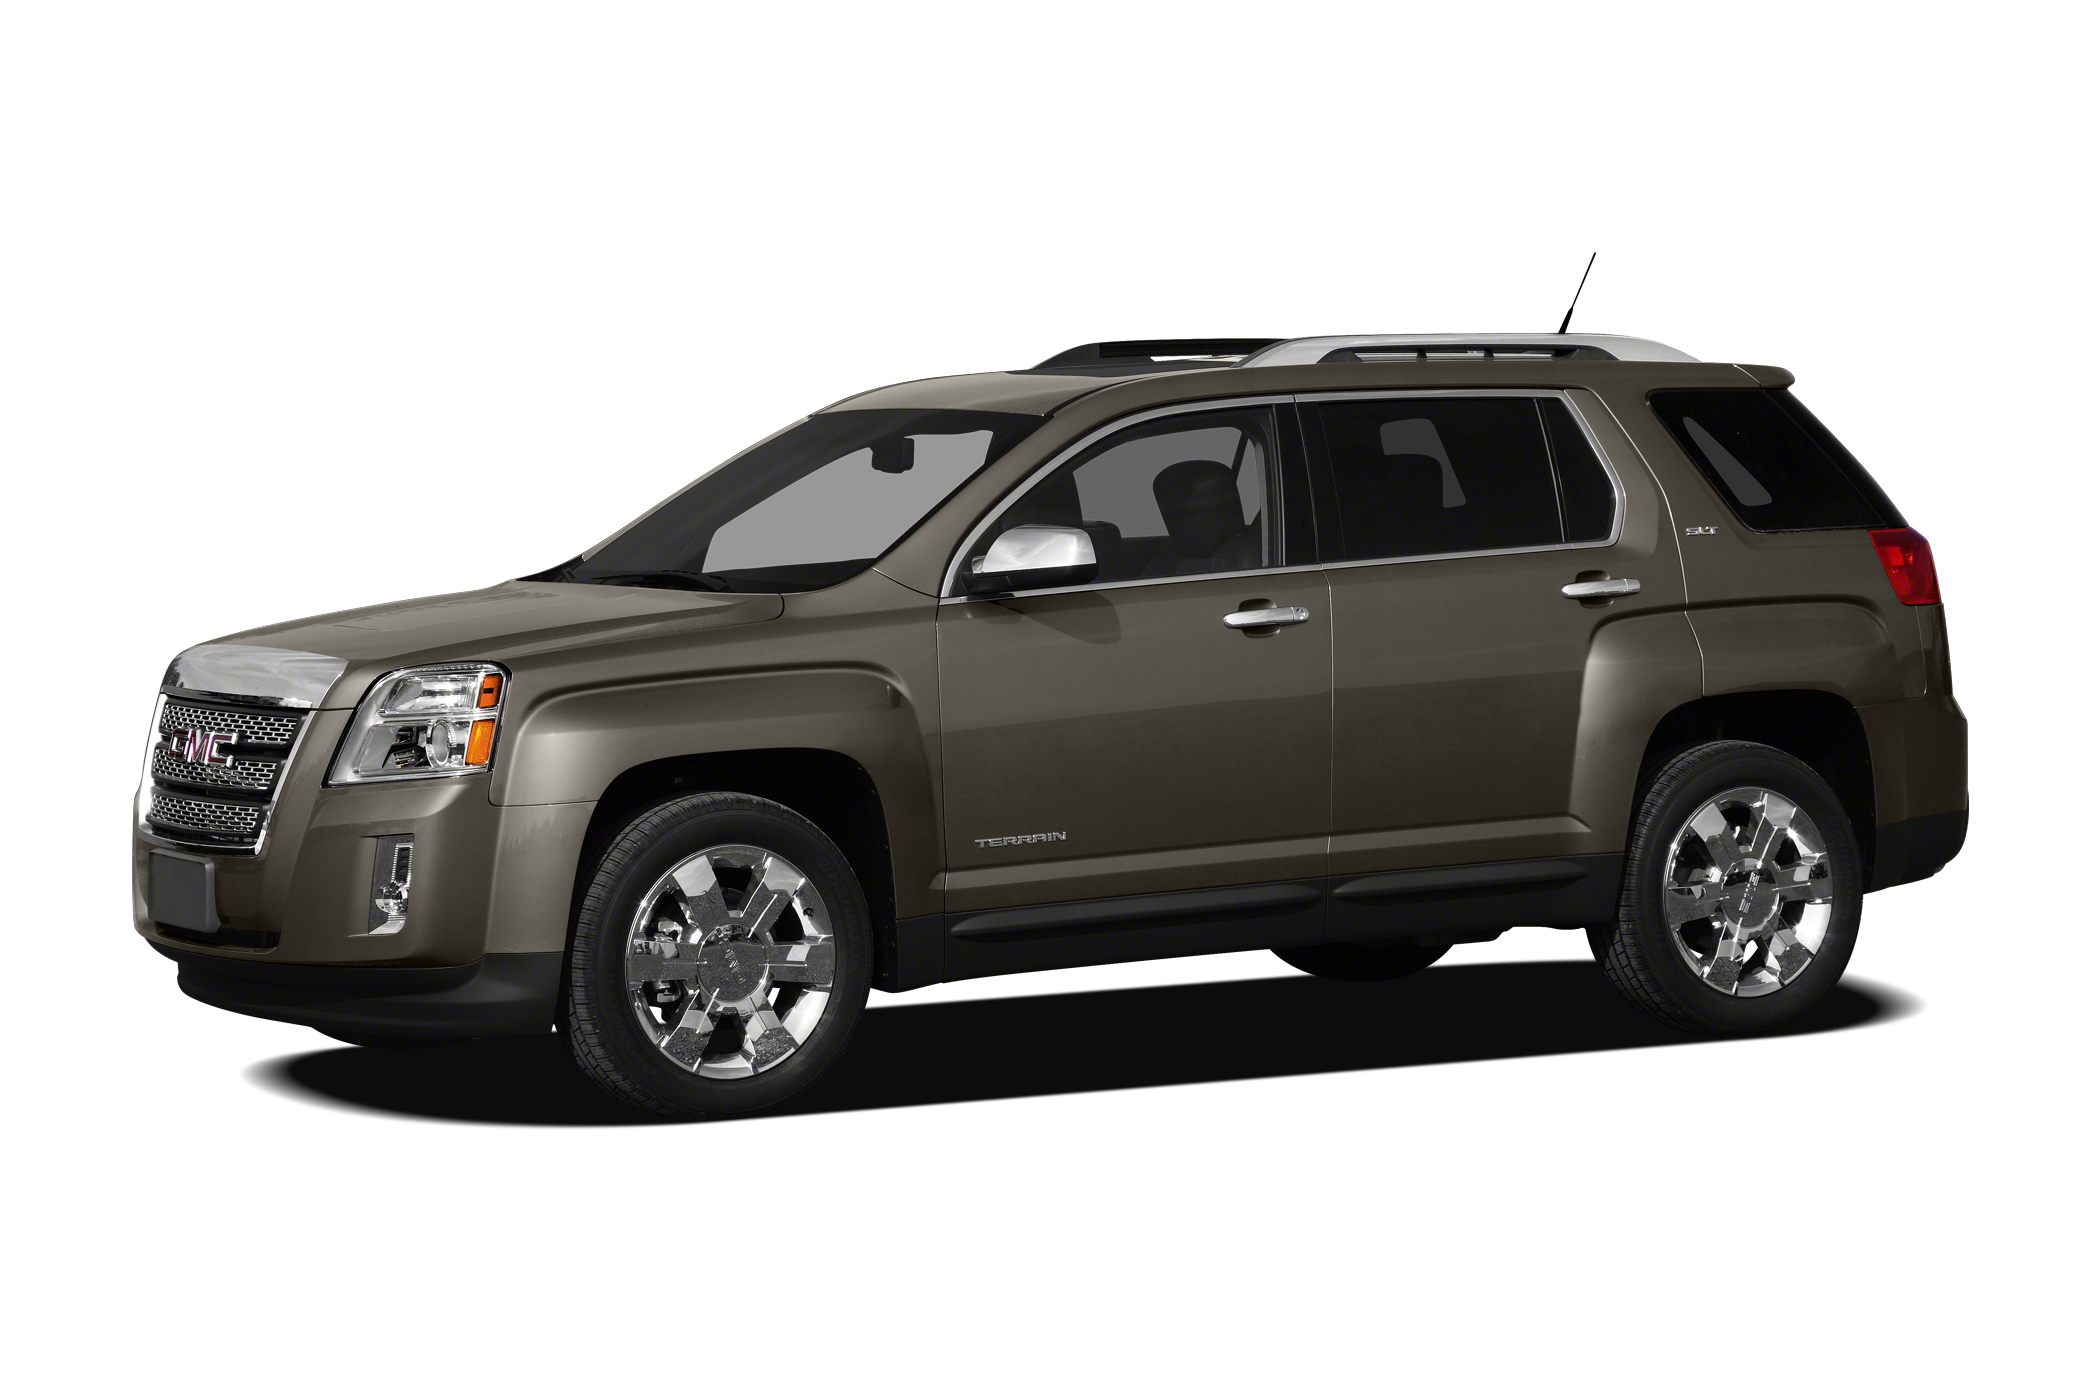 2012 GMC Terrain SLT-1 LOW MILES - 54785 EPA 29 MPG Hwy20 MPG City Heated Leather Seats iPod